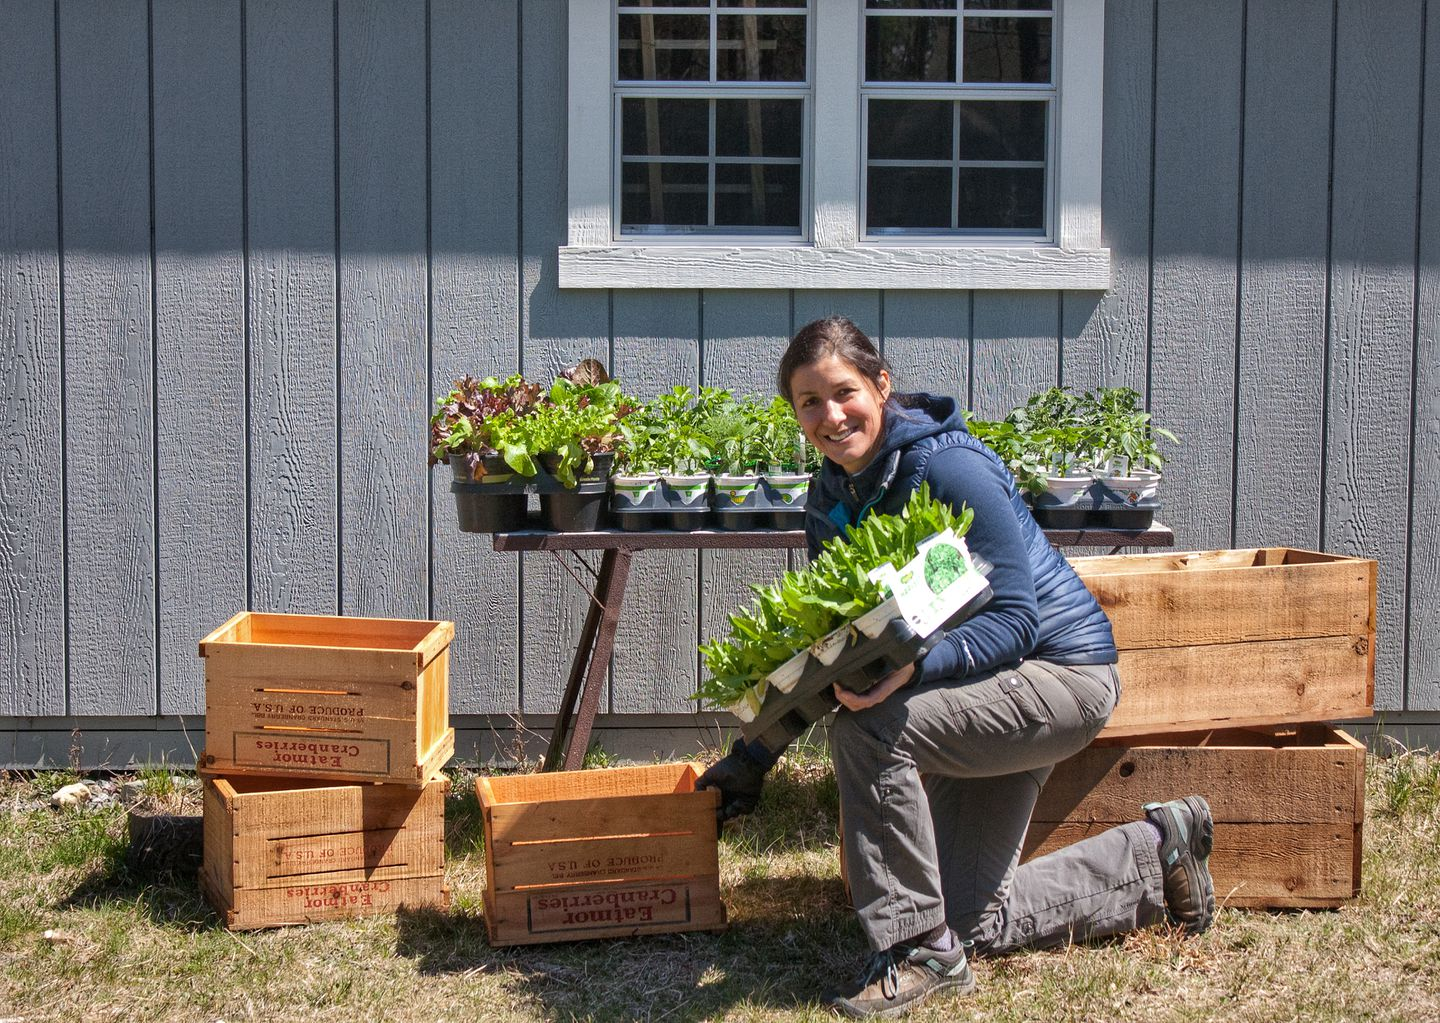 Jenn Nawada engineered the boxes to be easy to care for, even for the most novice growers.